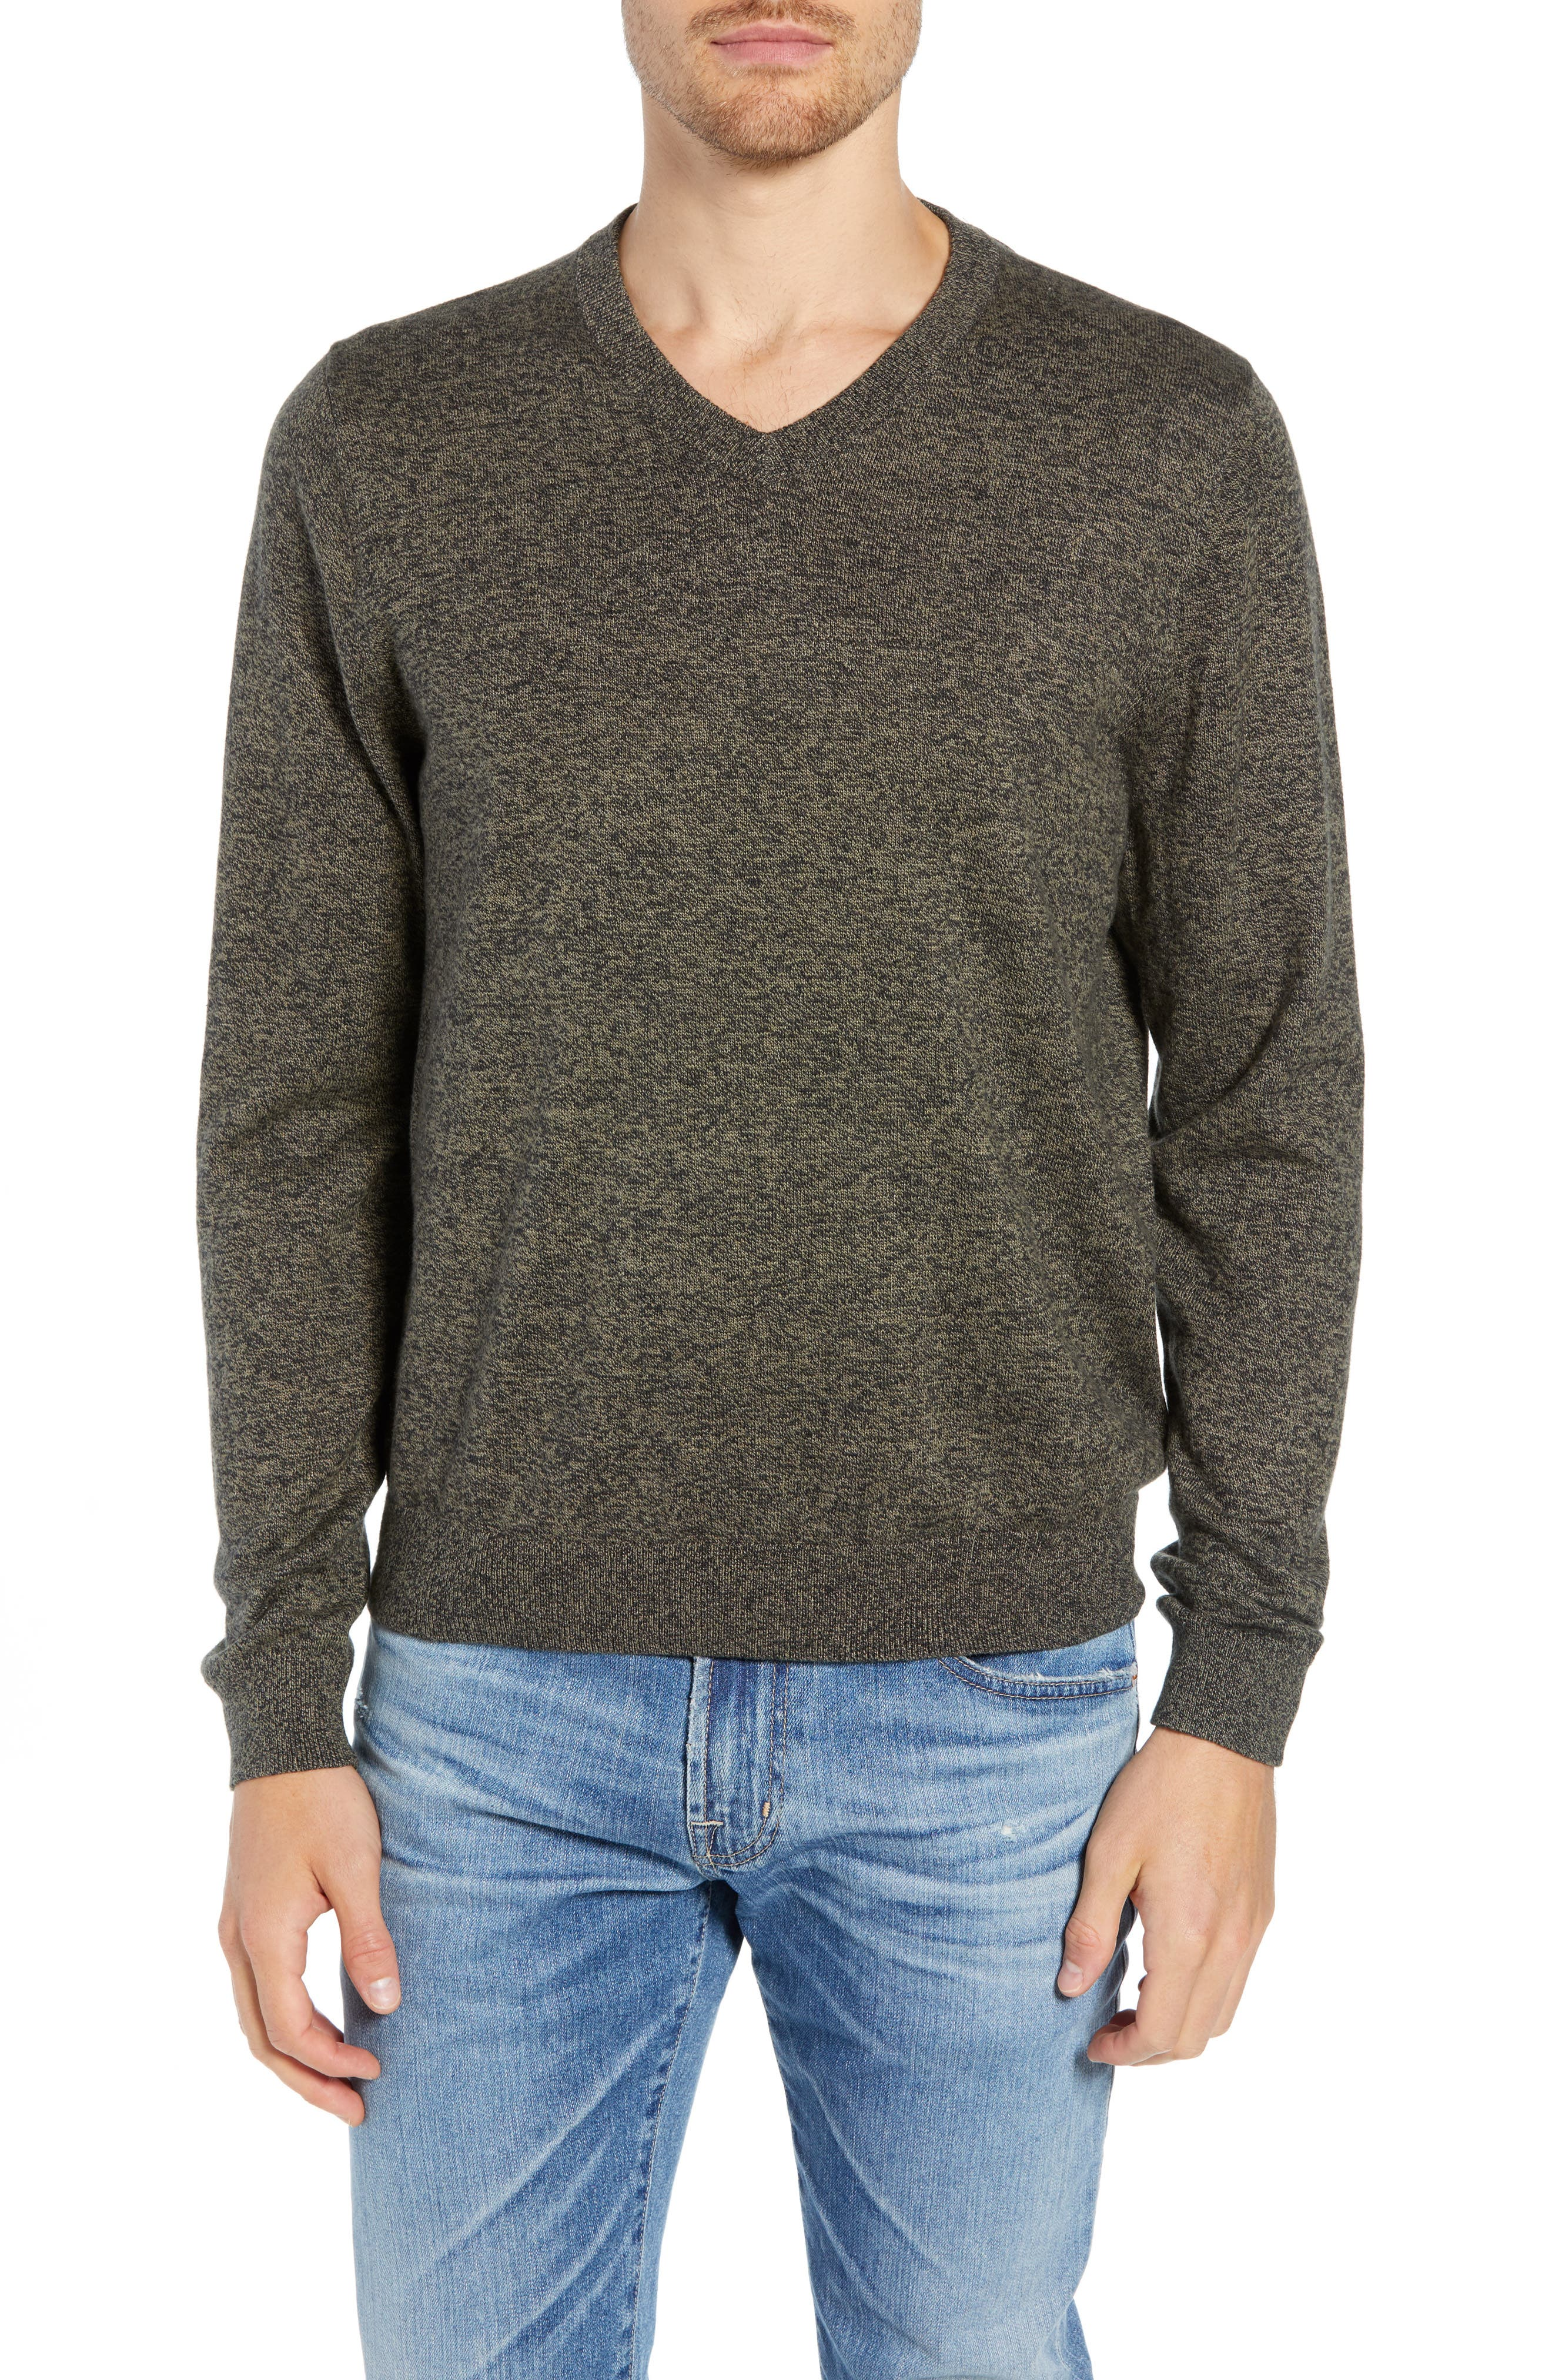 Cotton & Cashmere V-Neck Sweater,                         Main,                         color, GREEN FOREST MARL